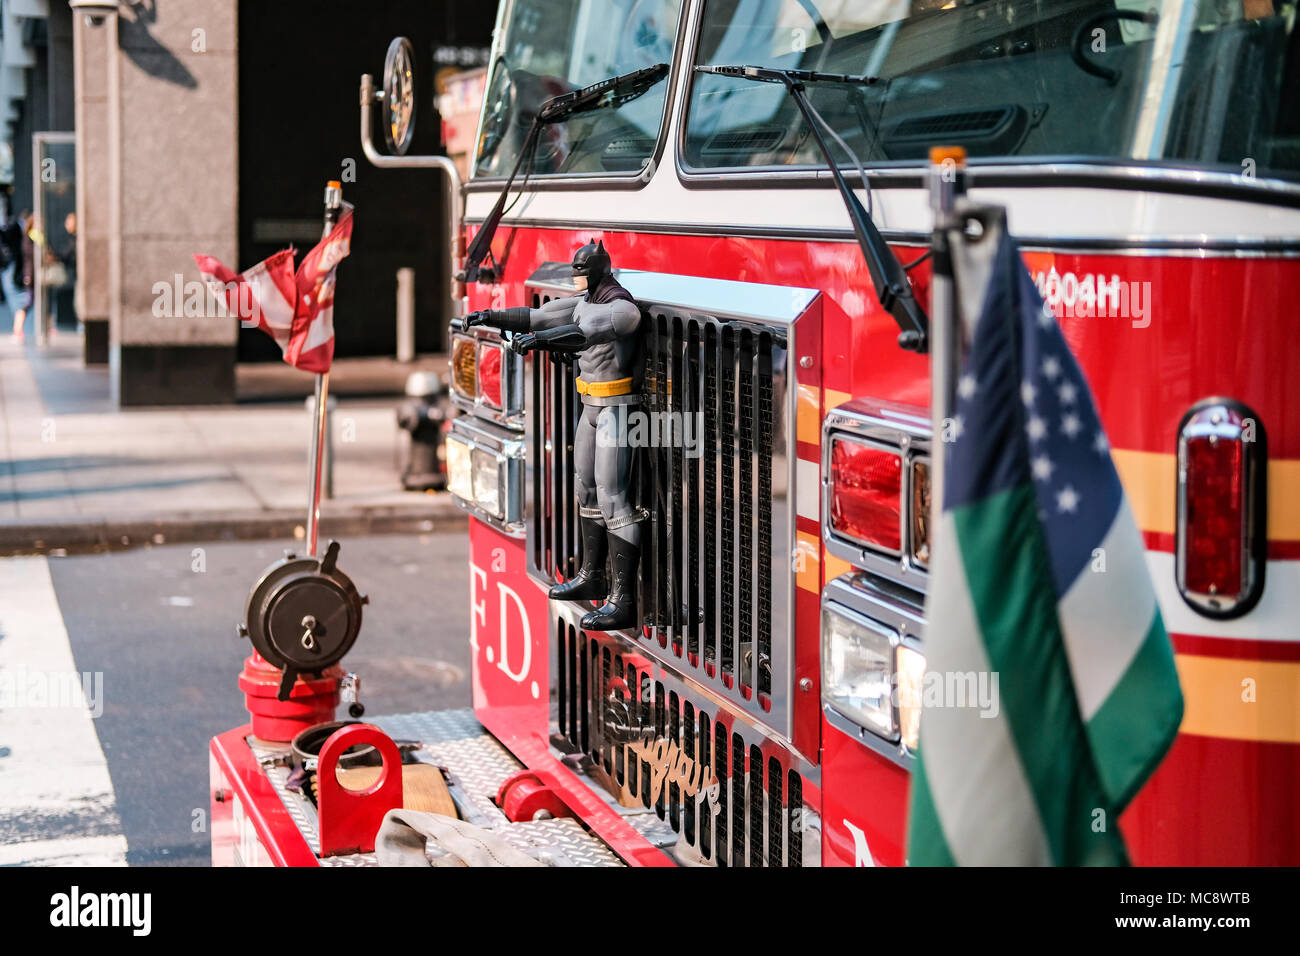 Detailed, shallow focus of the front of an FDNY truck showing a super-hero toy attached to the grill. Coachwork detail visible, seen at a junction. - Stock Image